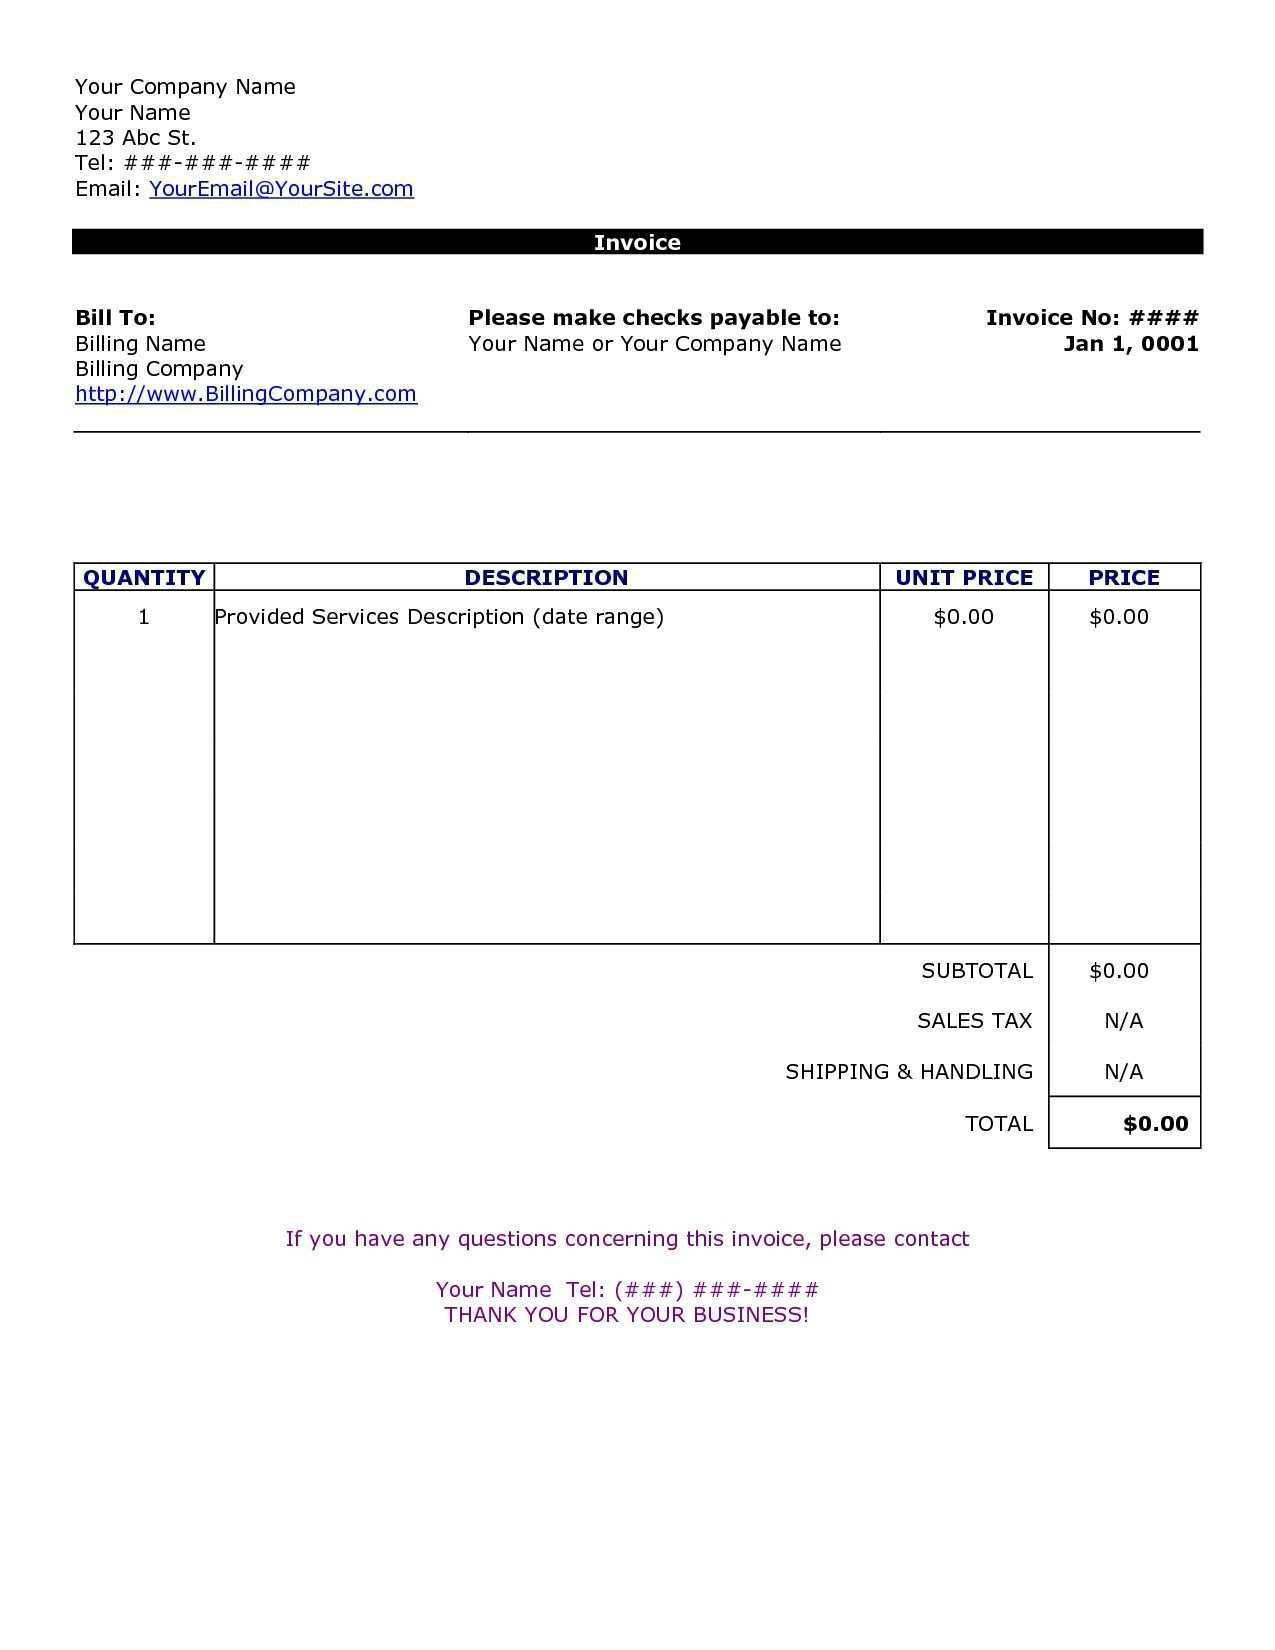 001 Remarkable Free Tax Invoice Template Excel South Africa High Resolution Full